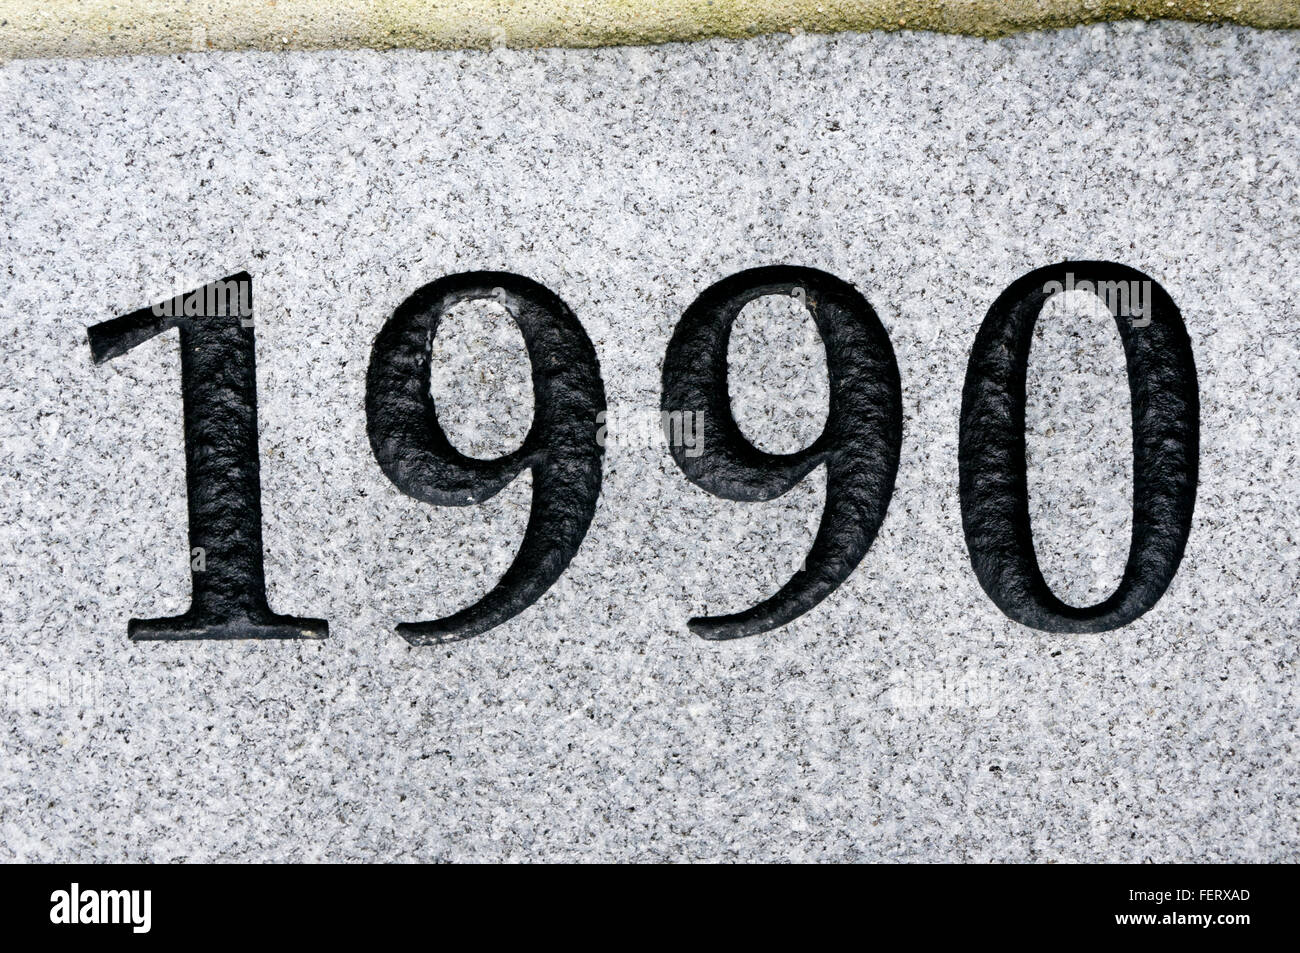 1990 house number carved in granite - Stock Image